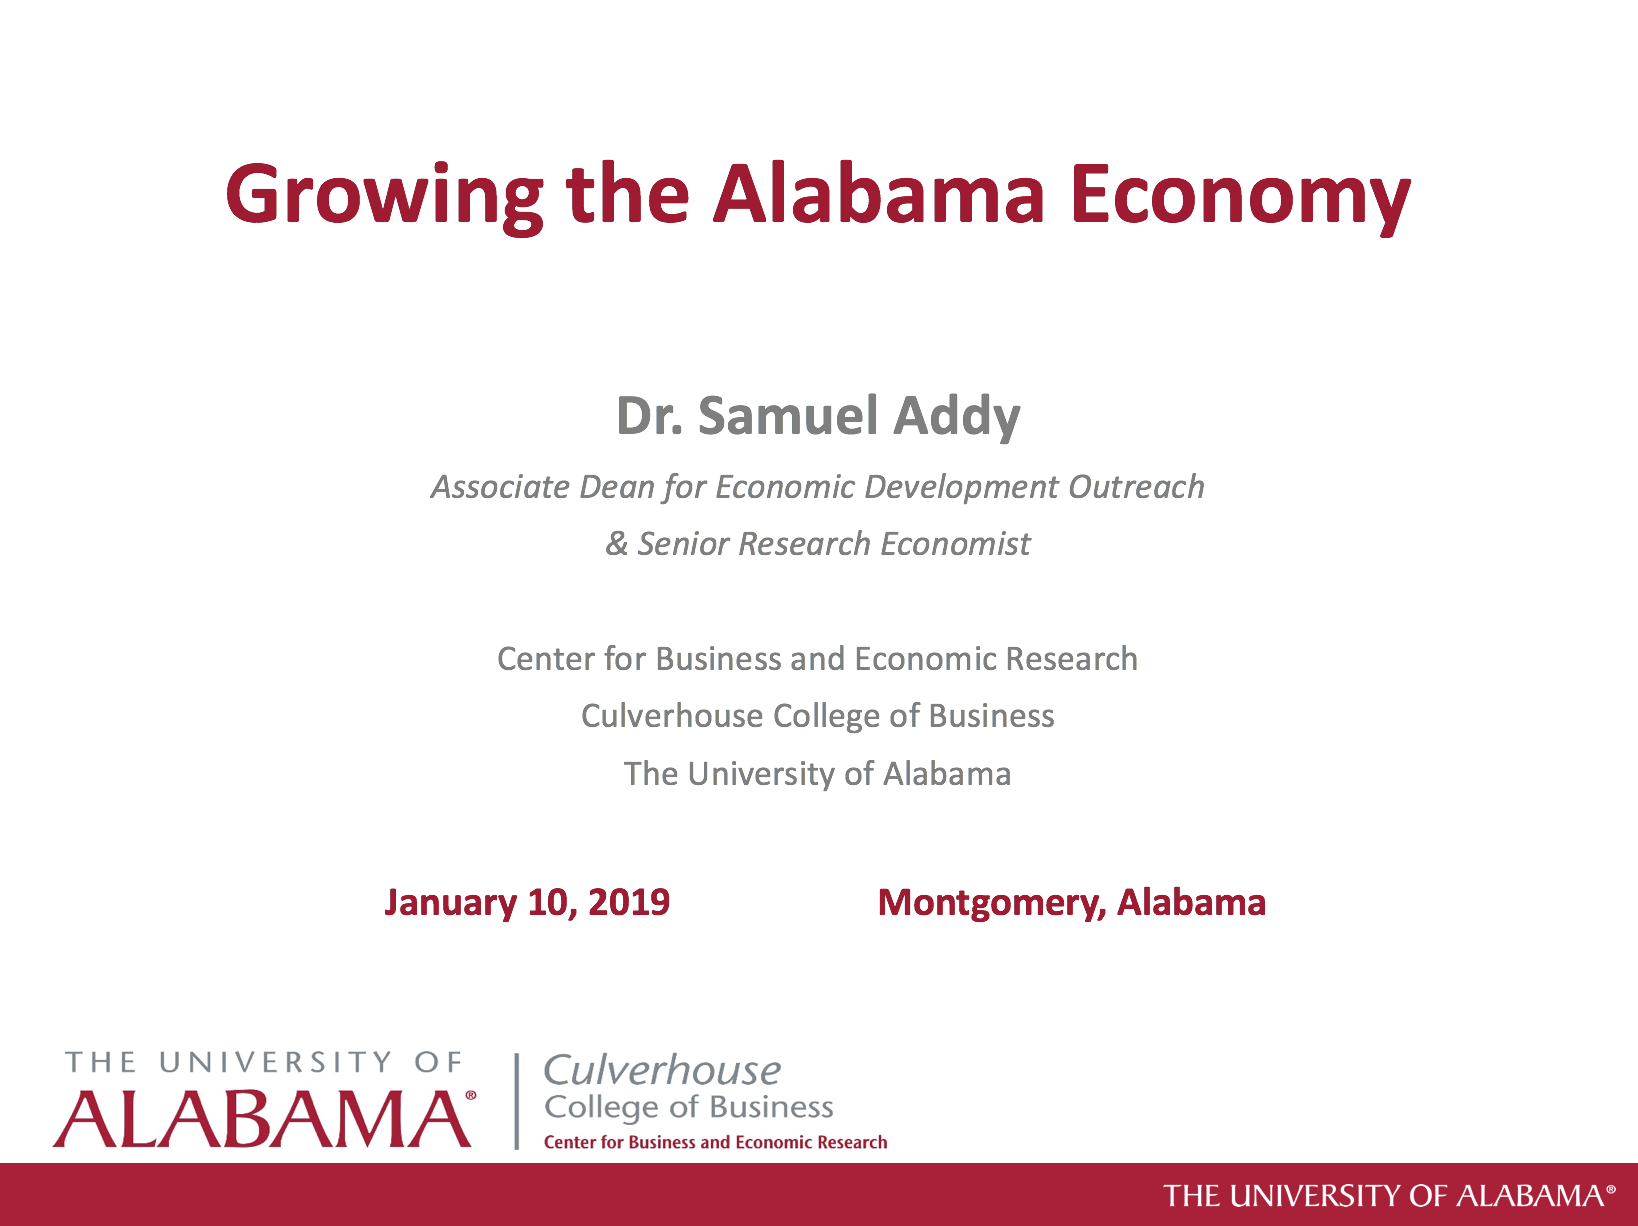 Growing the Alabama Economy Presentation